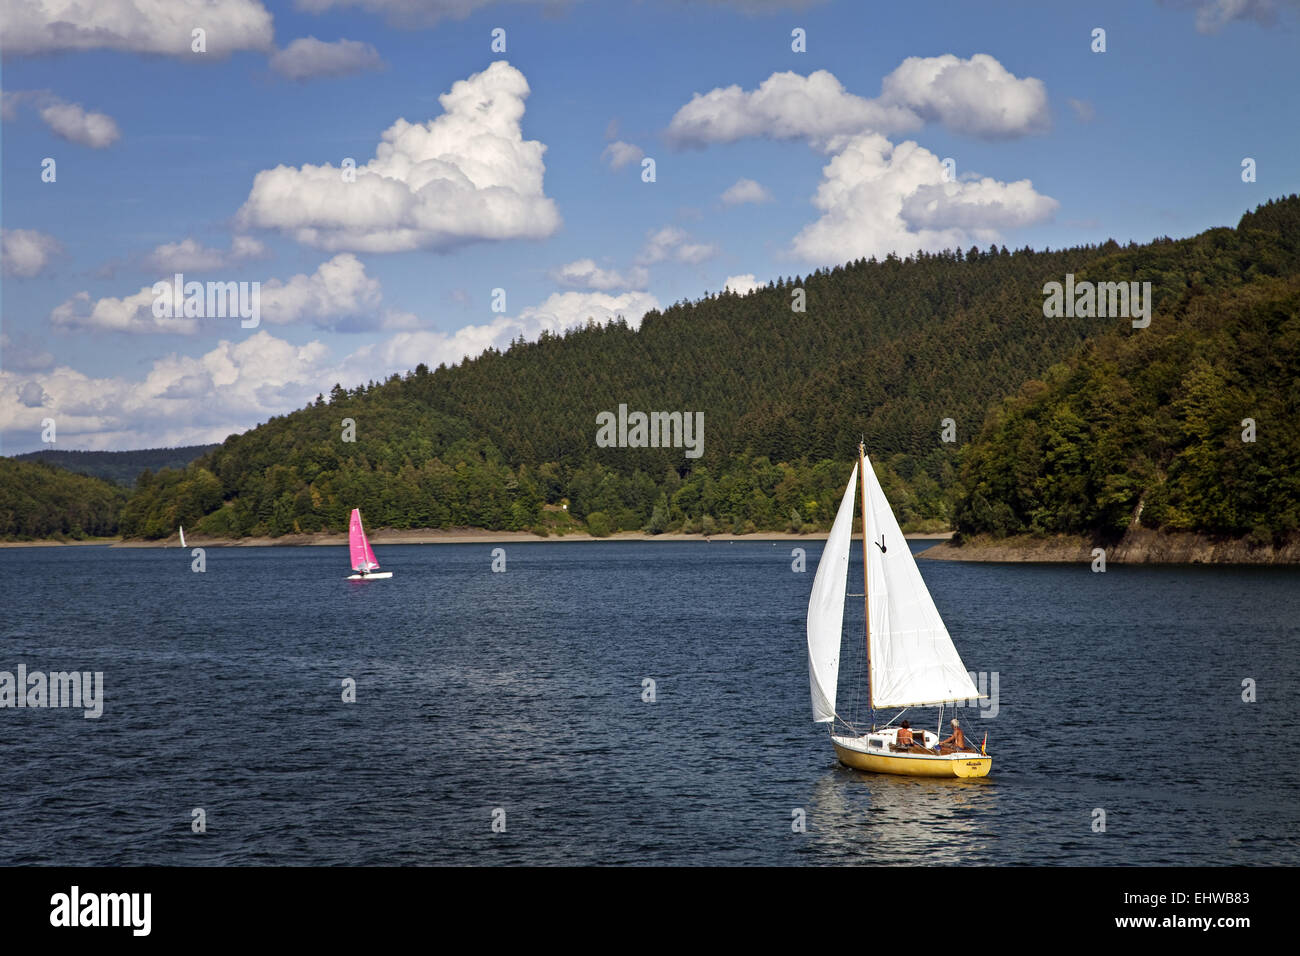 Sailing boats on the reservoir Bigge. - Stock Image